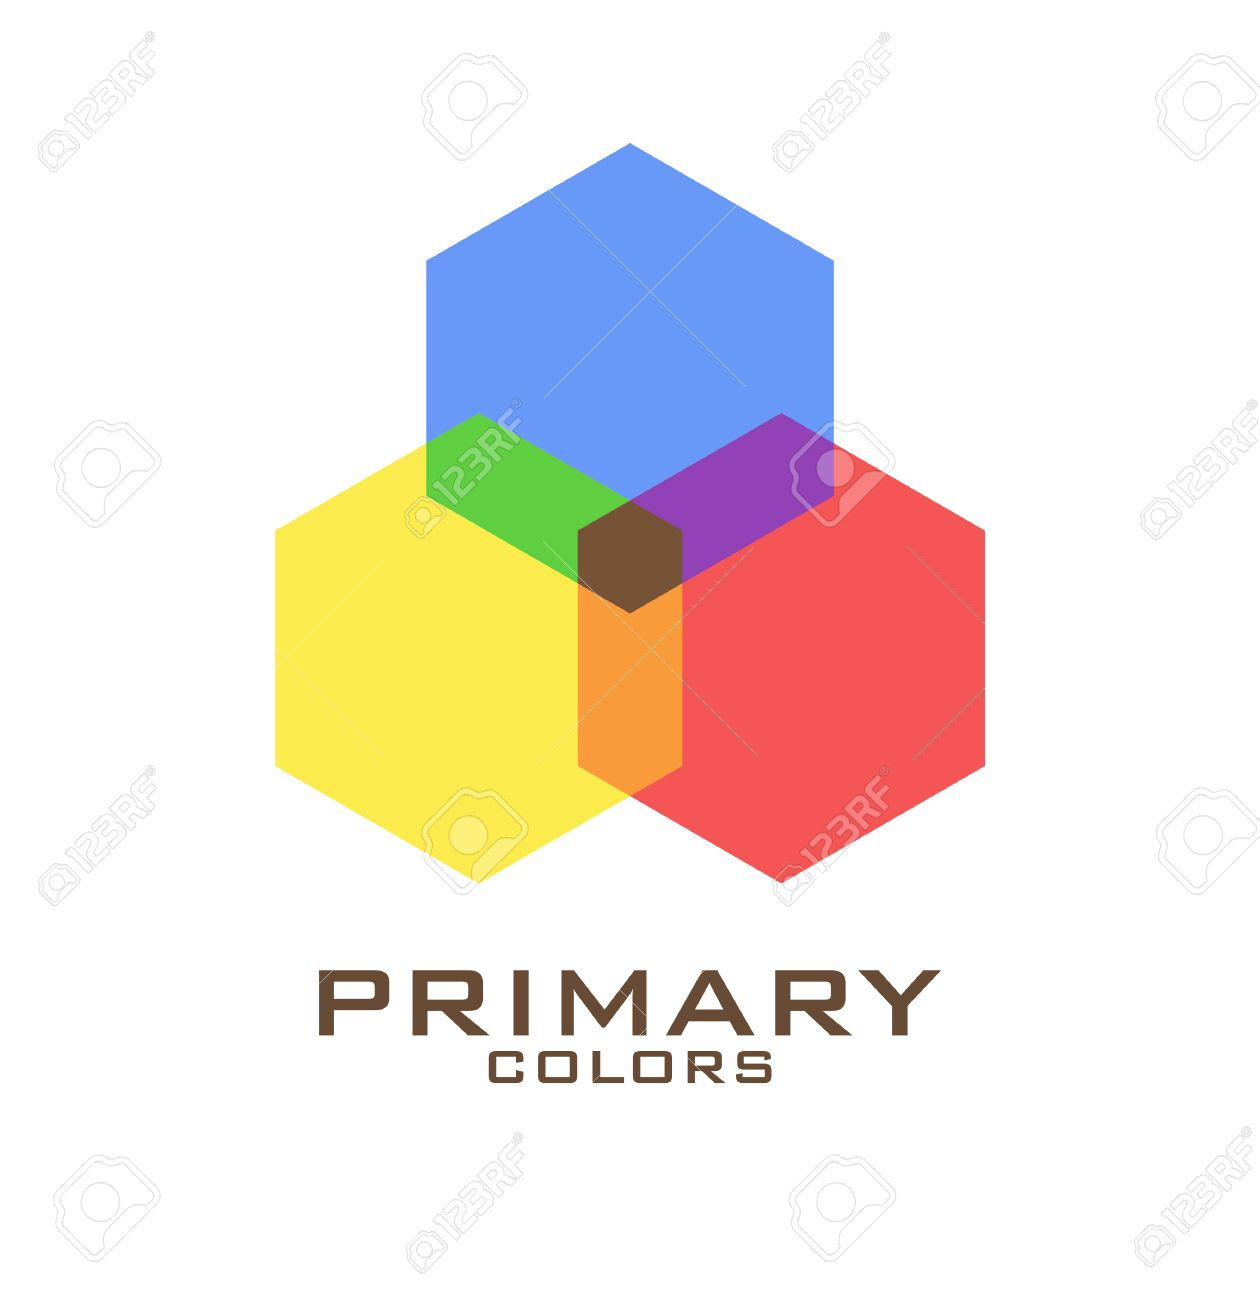 Primary Color Logo Design Template Three Hexagons Of Primary